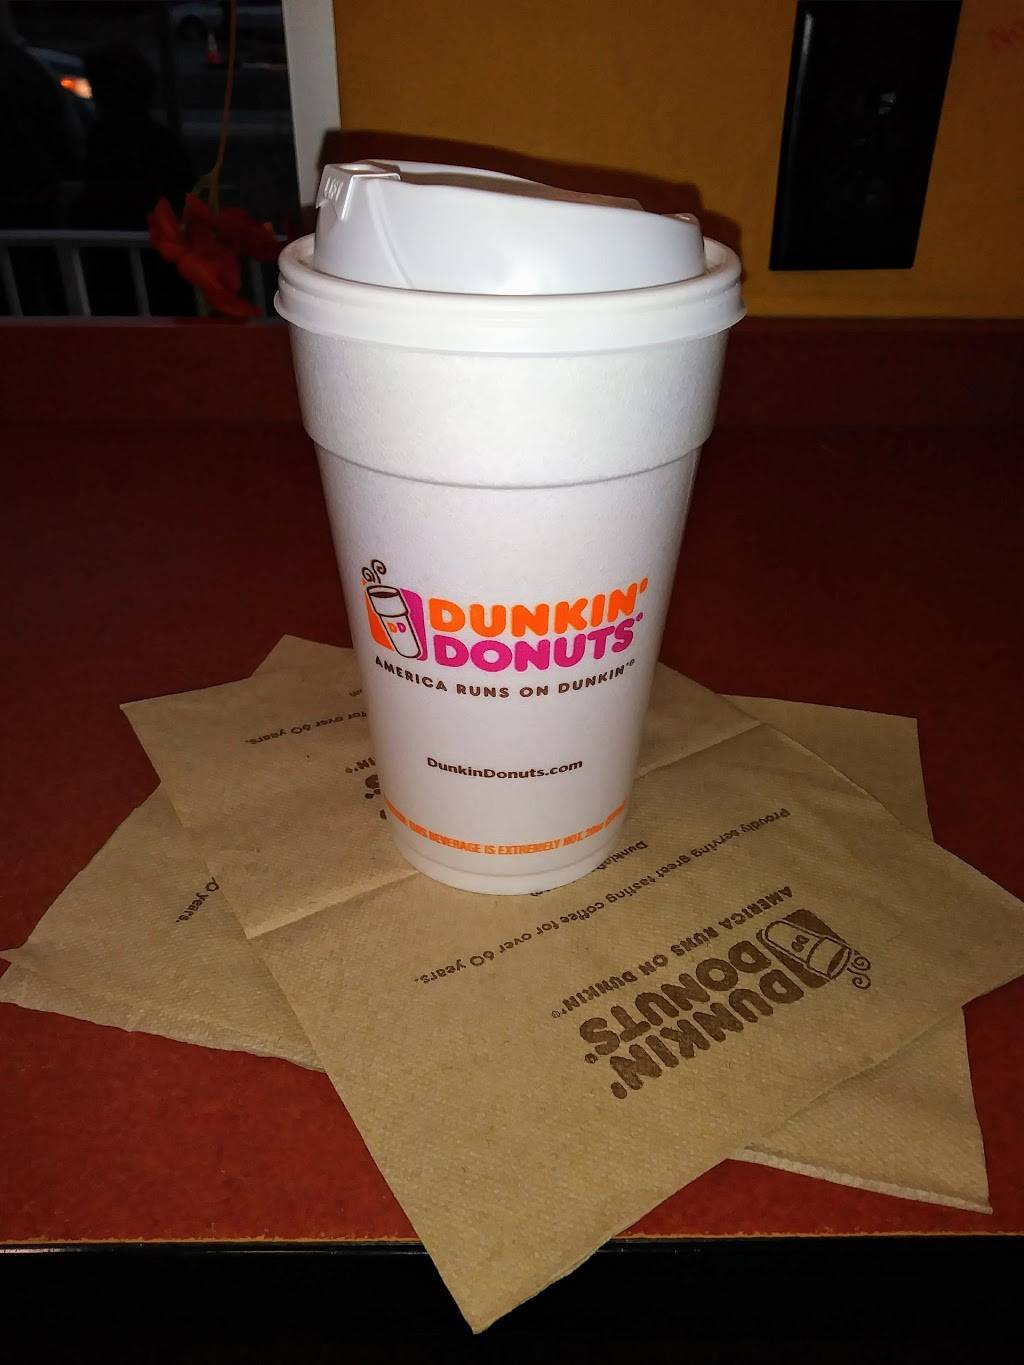 Dunkin Donuts | cafe | 2639 Morris Ave, Union, NJ 07083, USA | 9089647871 OR +1 908-964-7871